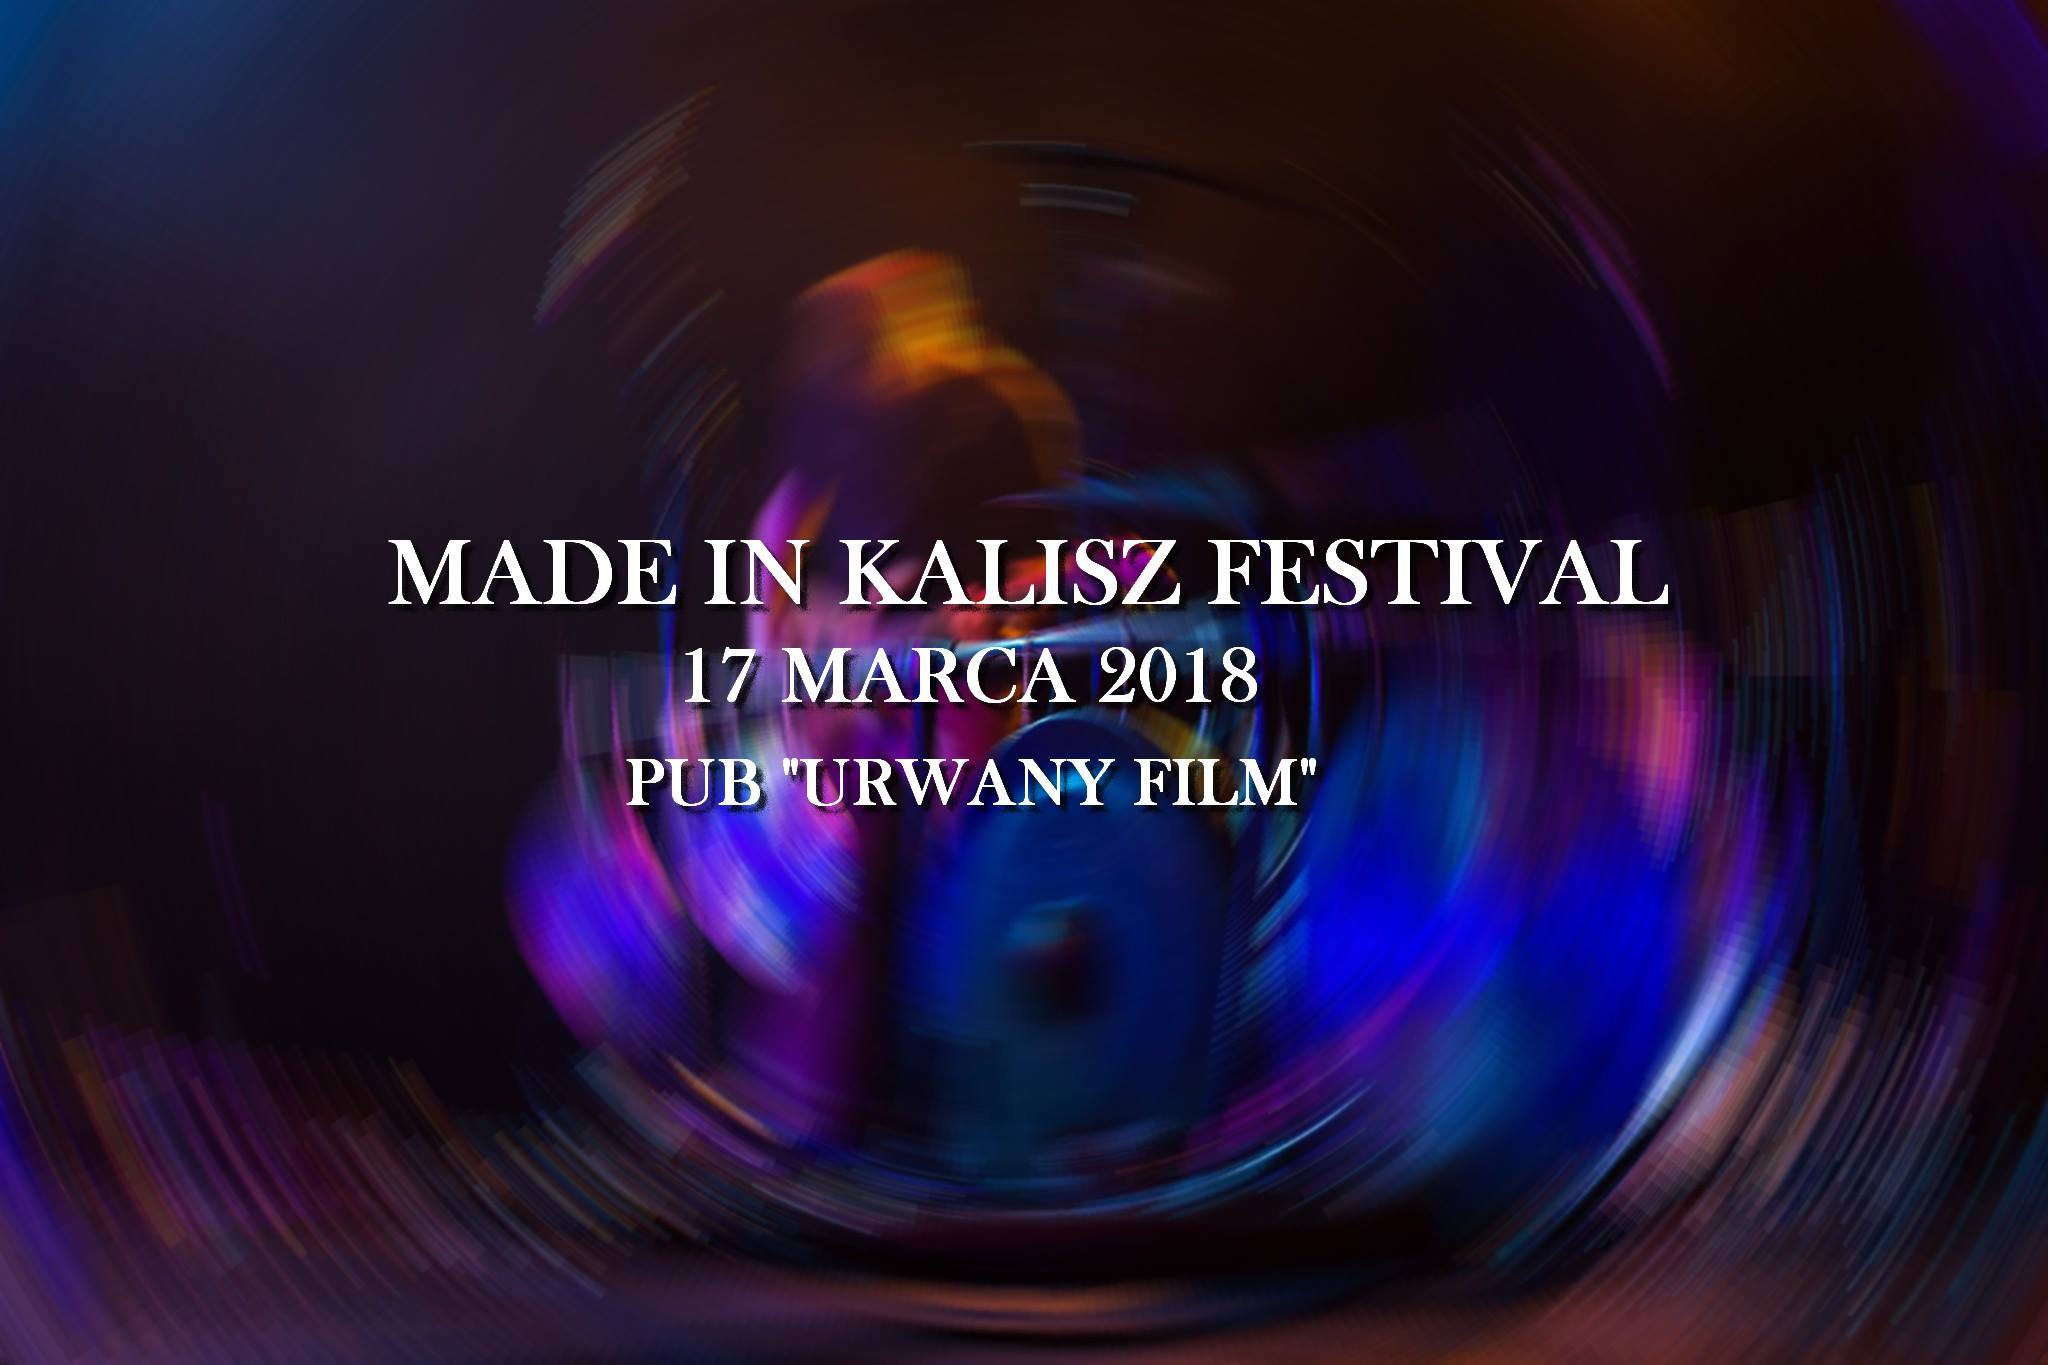 Made in Kalisz Festival 2018 (Kalisz - Pub Urwany Film - 17.03.2018)